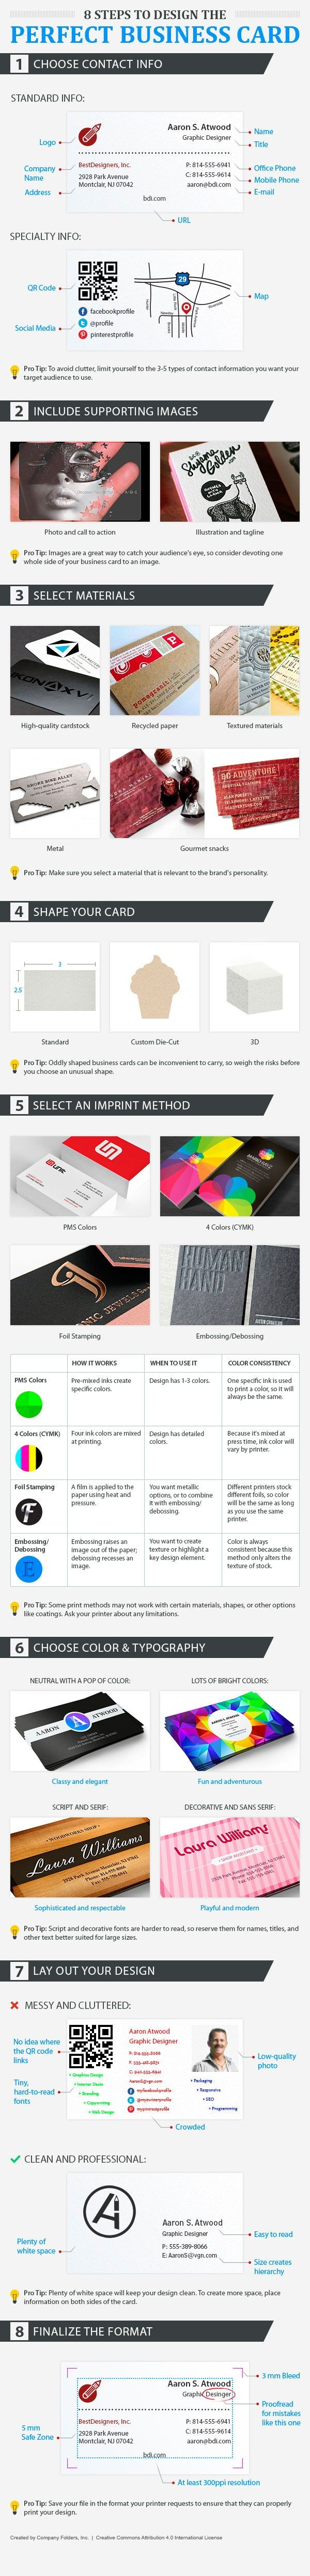 Infographic Tips To Design The Perfect Business Card